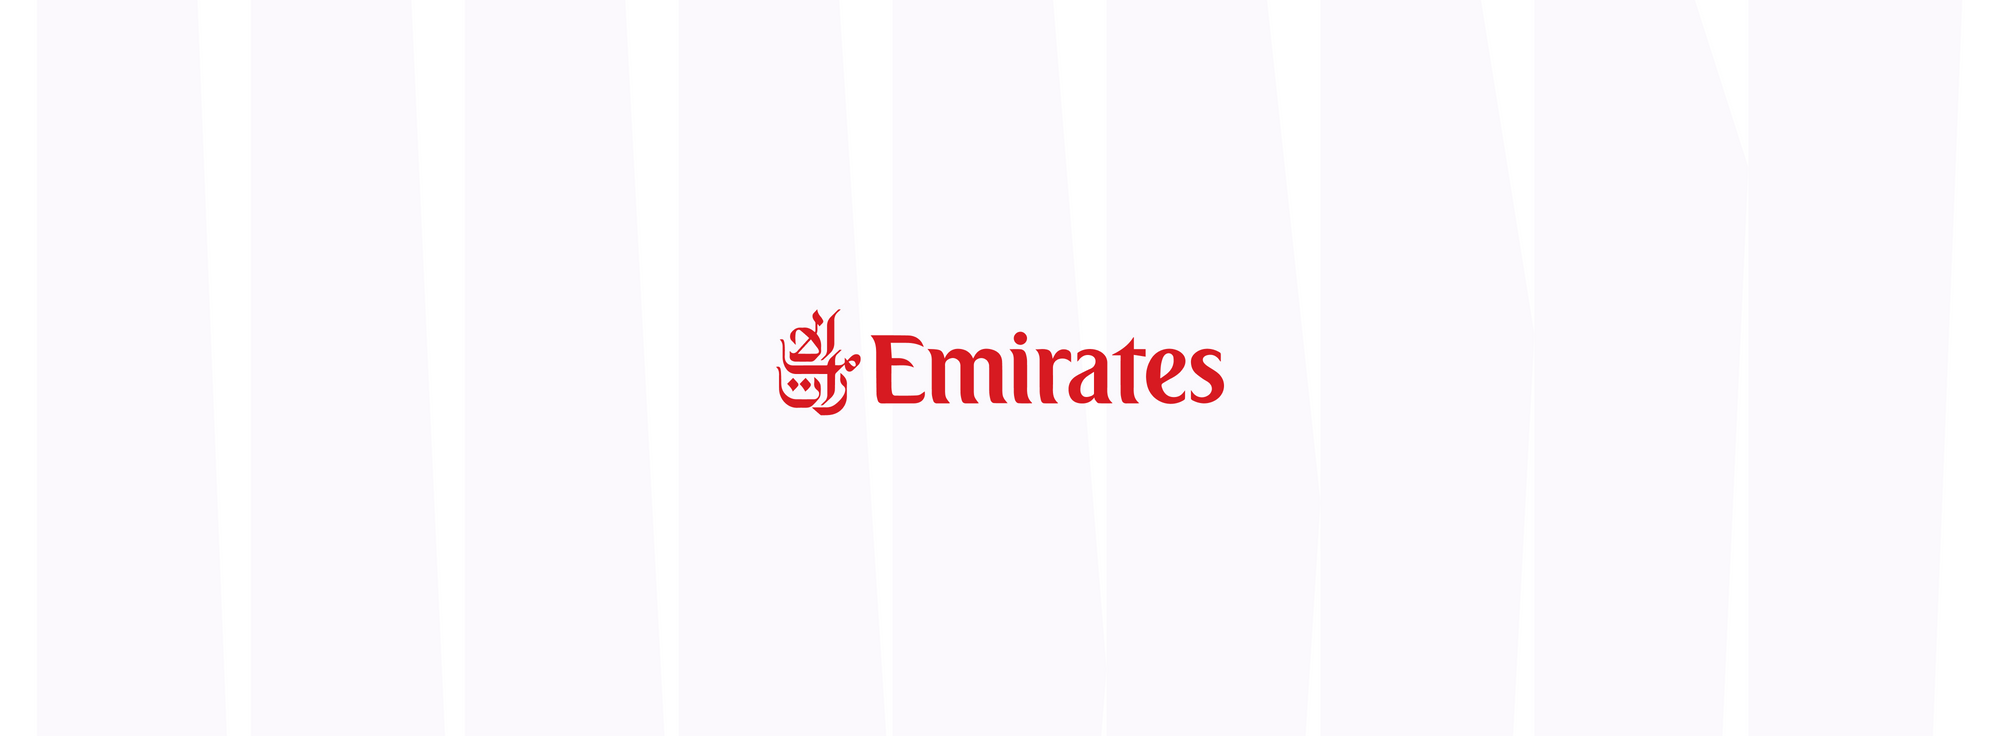 Termination of Emirates' participation in the Sabre GDS